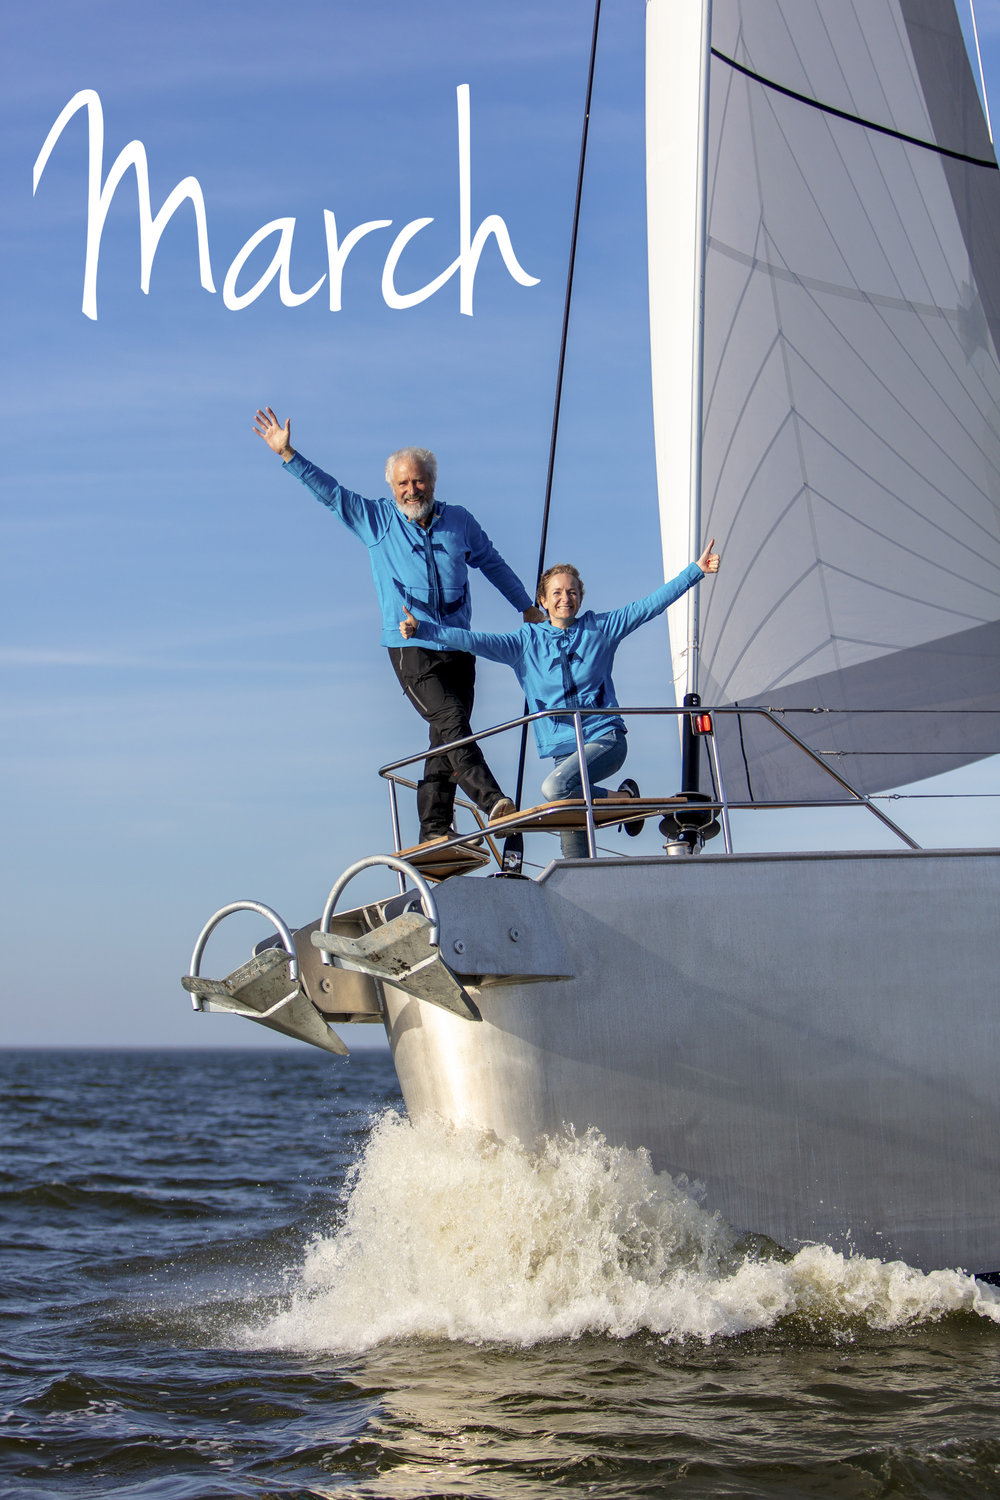 Thanks to a colleague of my father, I came in touch with Philippe, Thomas and Marion, a fantastic Belgian family who share the dream, the vision, the style, the love for people and the right spirit. It was an eyeopener ! In March, I had the honour to visit their beautiful yacht at the shipyard in Makkum, where it was being built. This team is our prime yacht partner and we will explore the Arctic together. You can be part of our first upcoming joint adventure:  puffins.travel/spitsbergen .